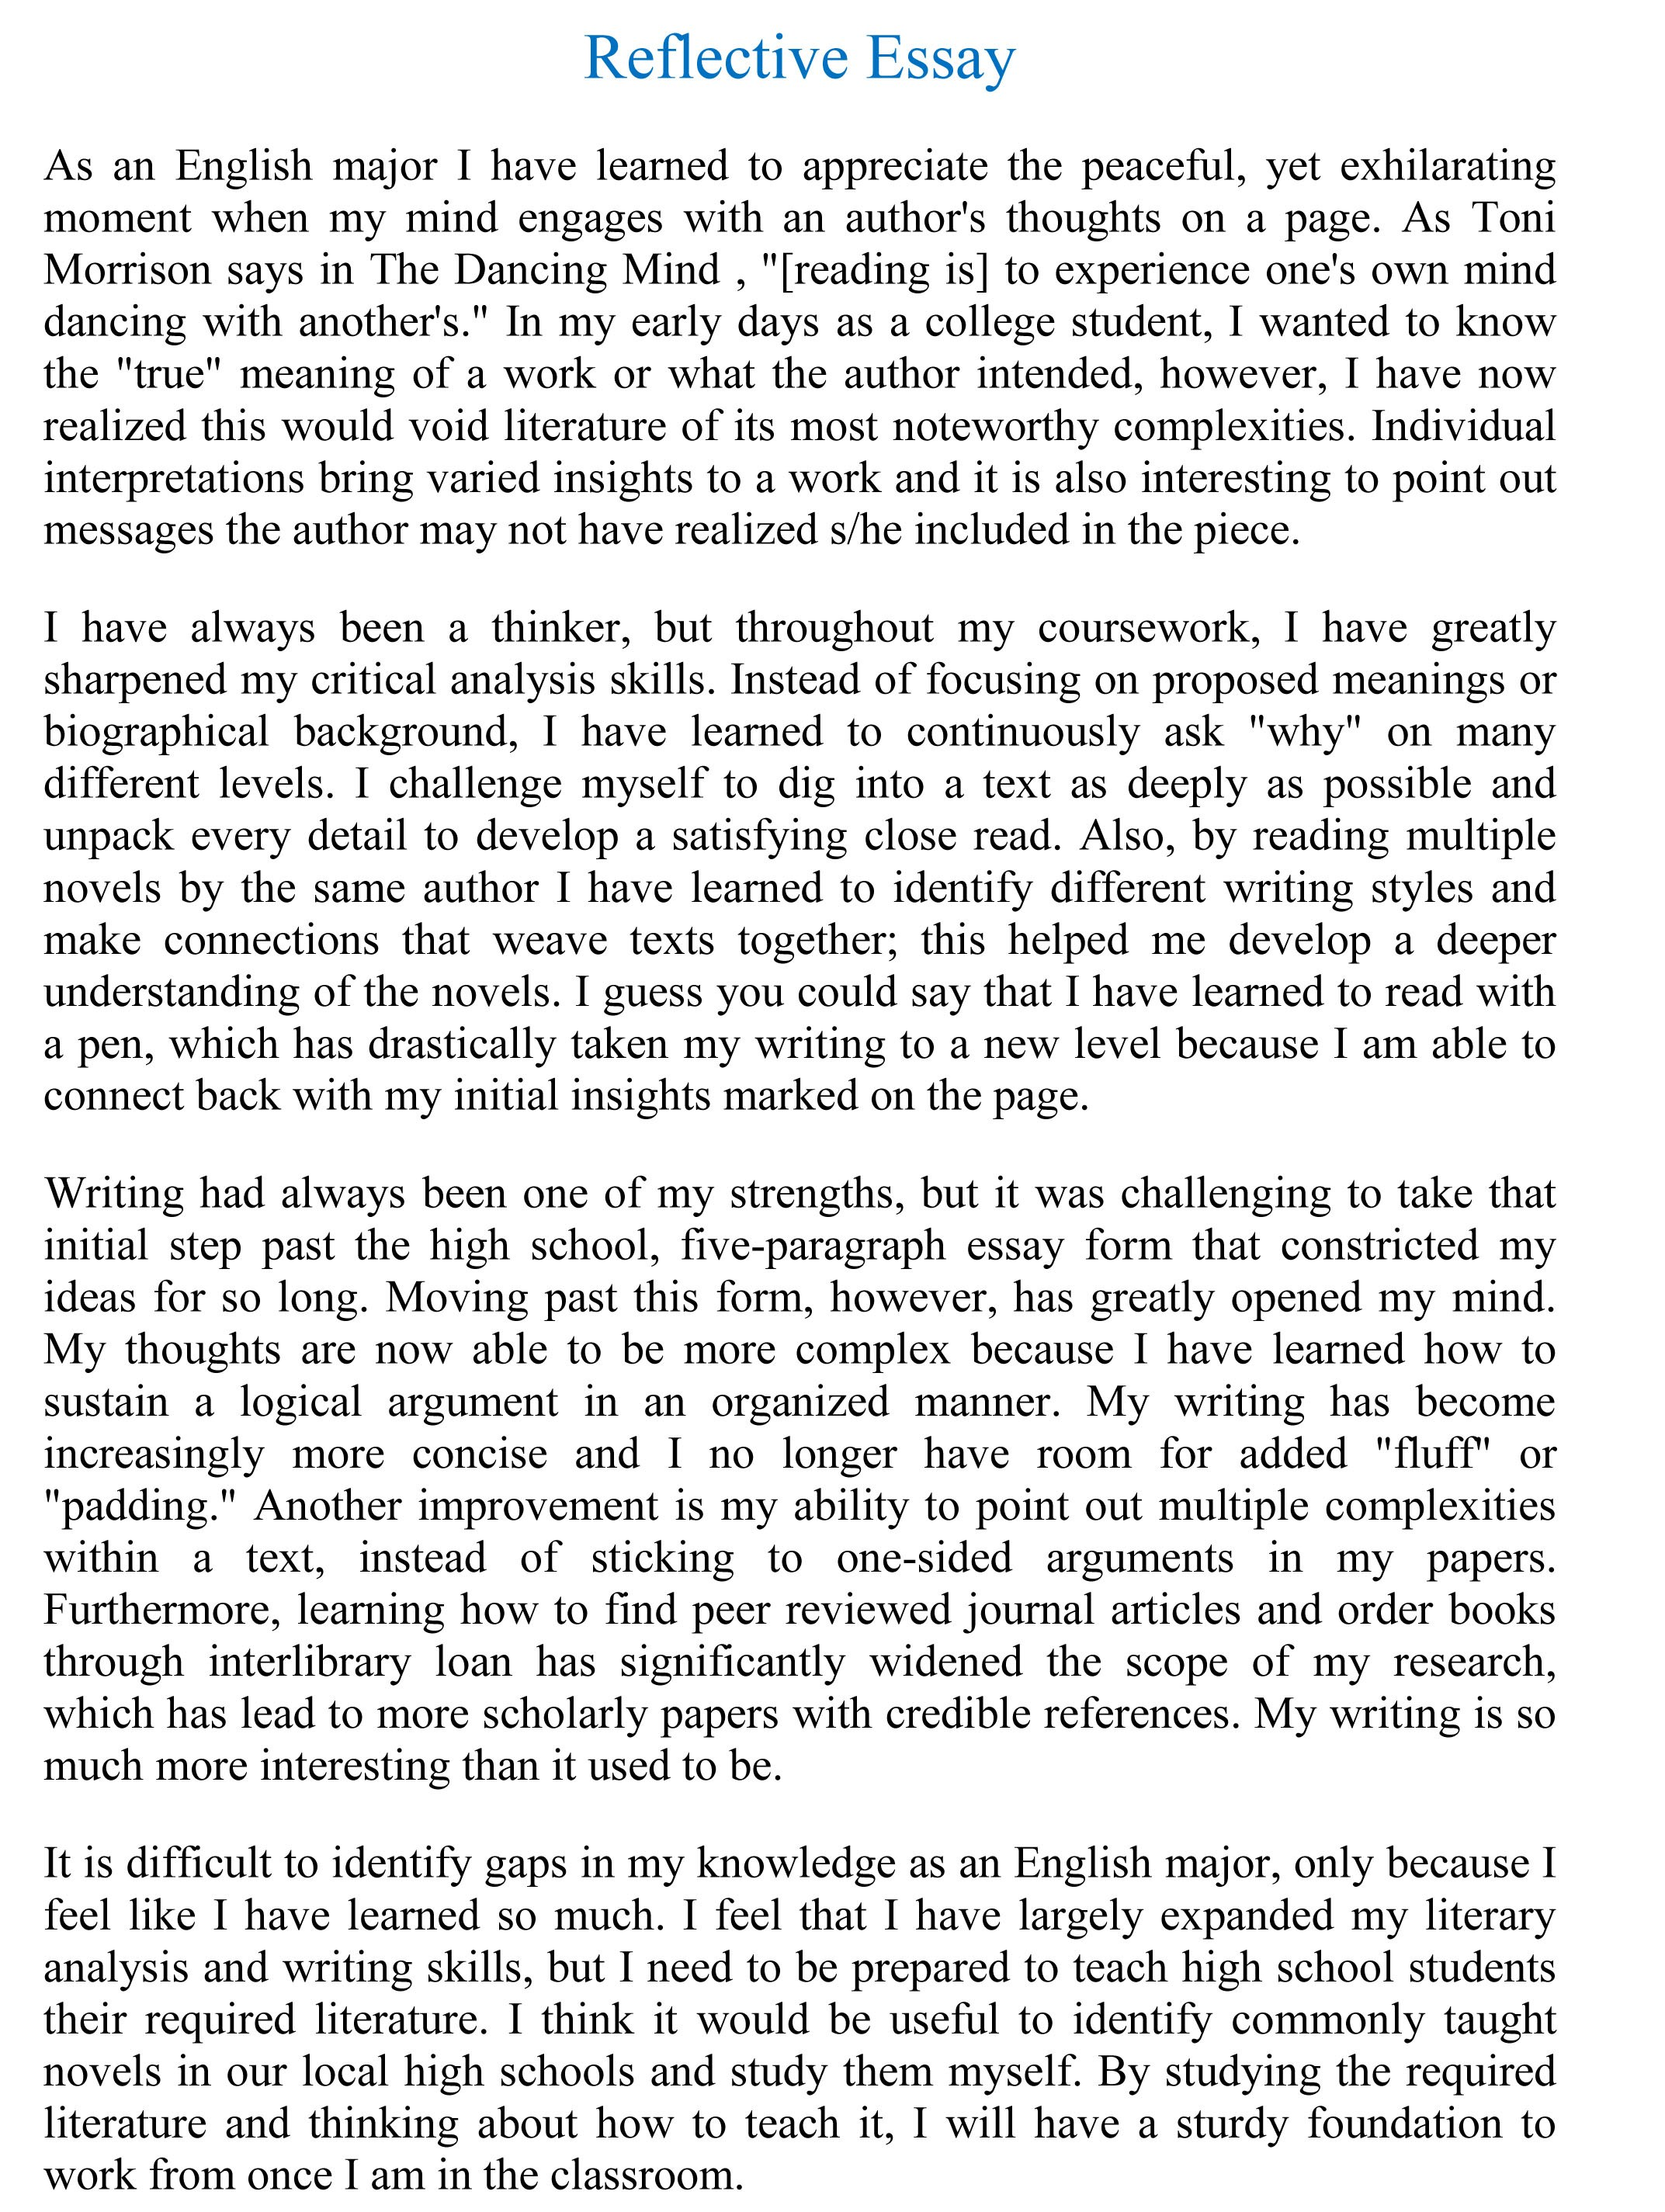 003 Reflective Essay Sample Example How To Marvelous Write A Introduction On Book Do You Full